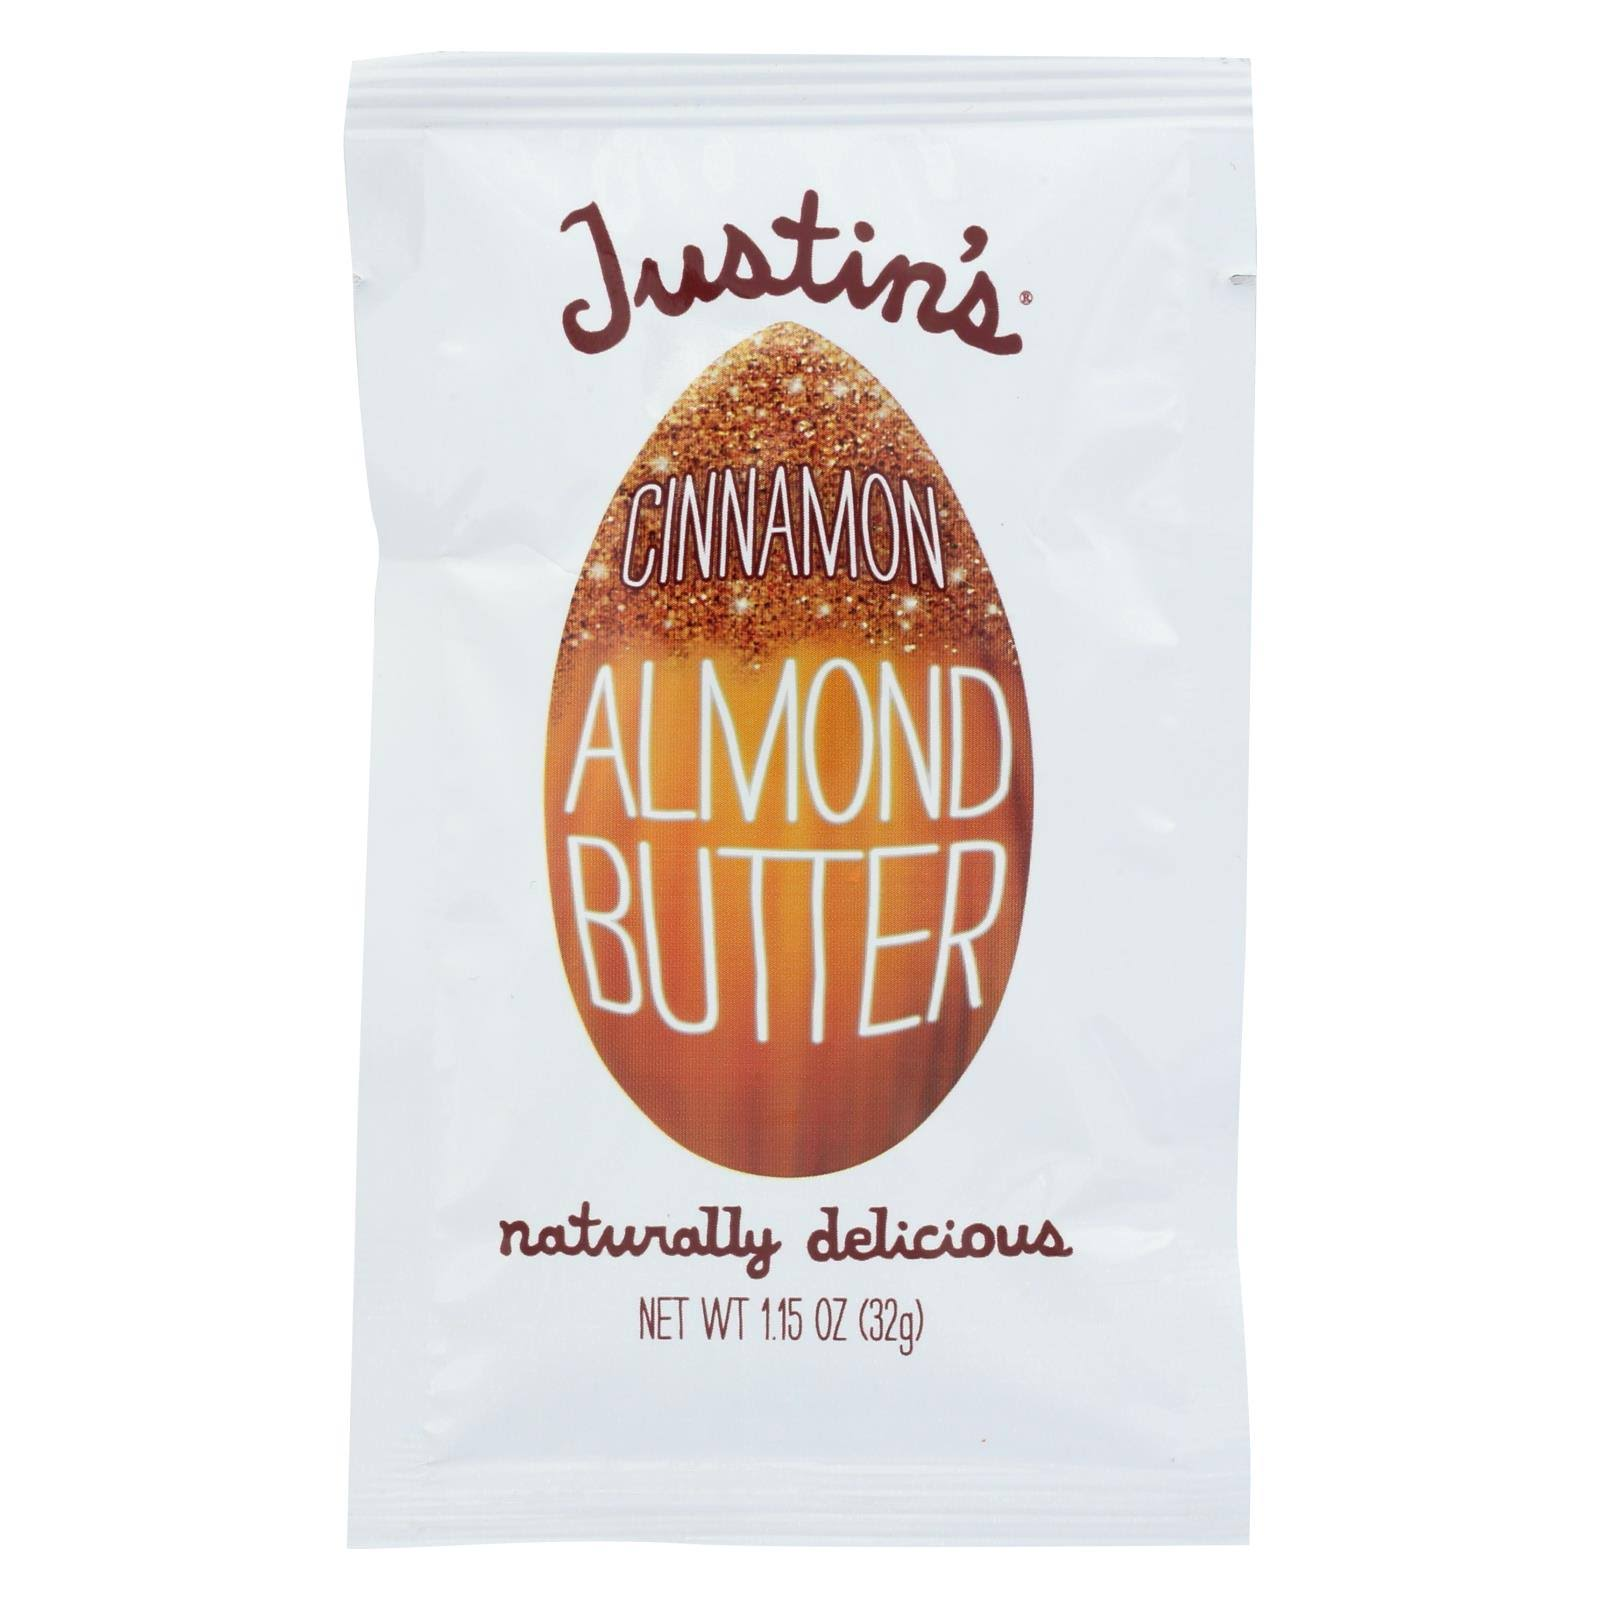 Justins Butter, Almond, Cinnamon - 1.15 oz